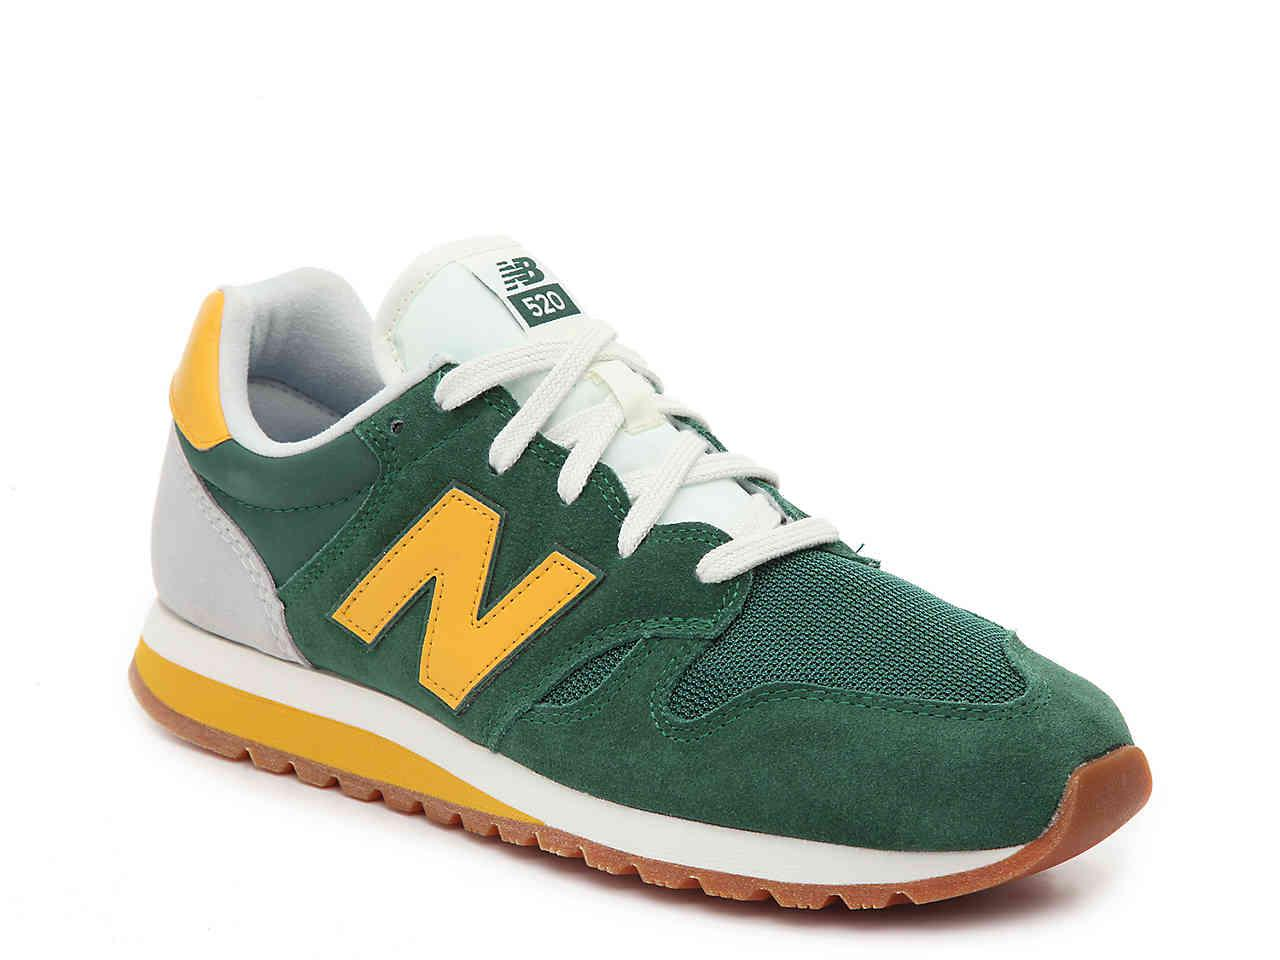 New Balance Suede 520 Sneaker in Green/Mustard Yellow (Green) for ...